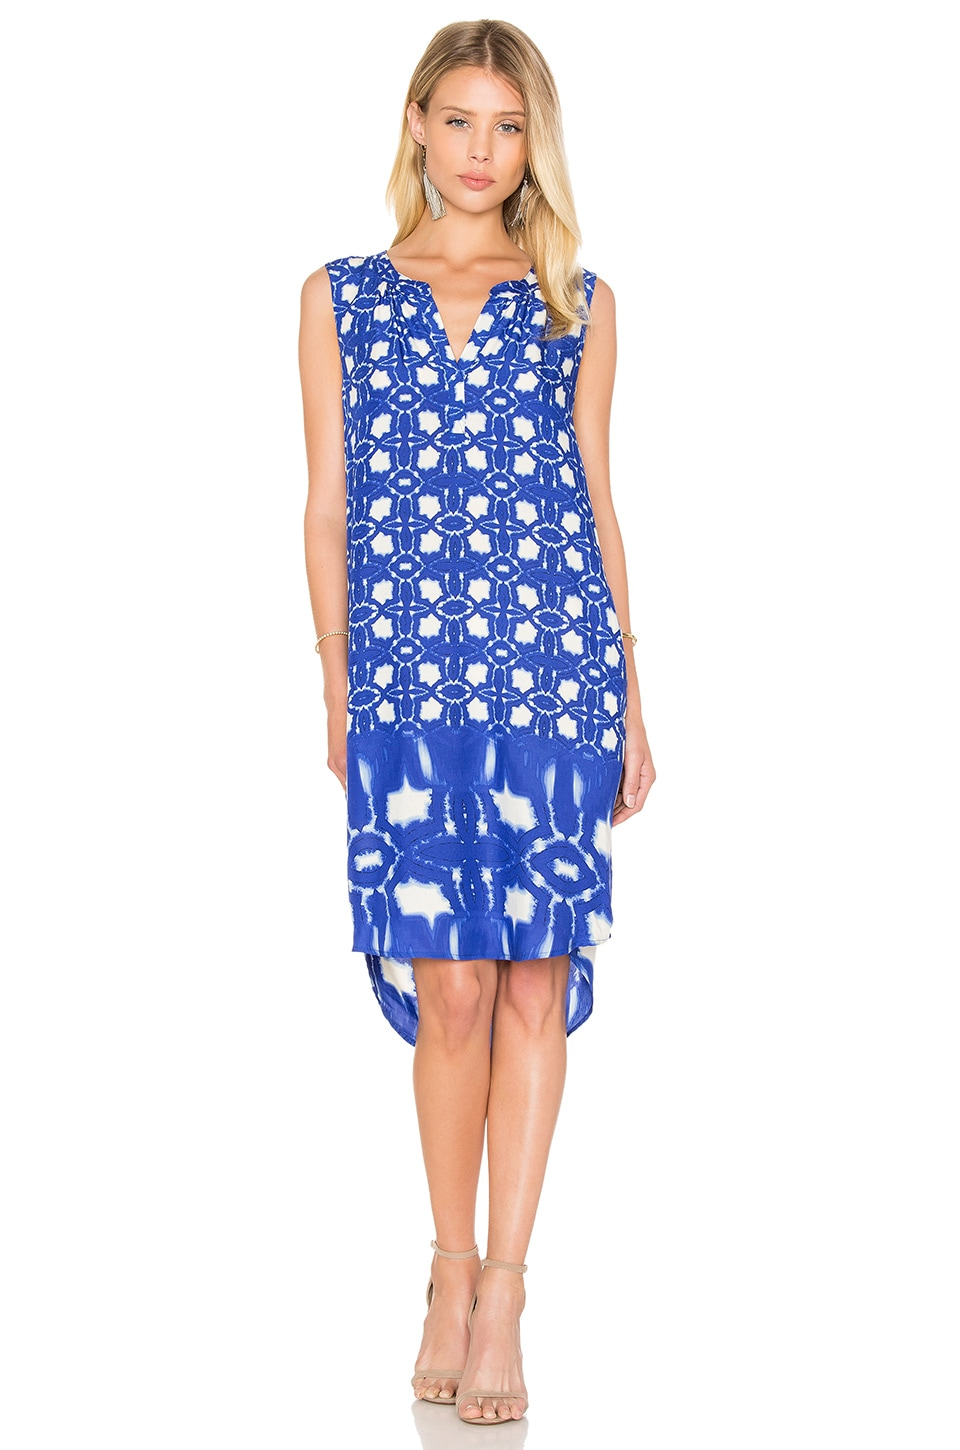 Velvet by Graham & Spencer Bonita Atlantis Print Shift Dress in Blue